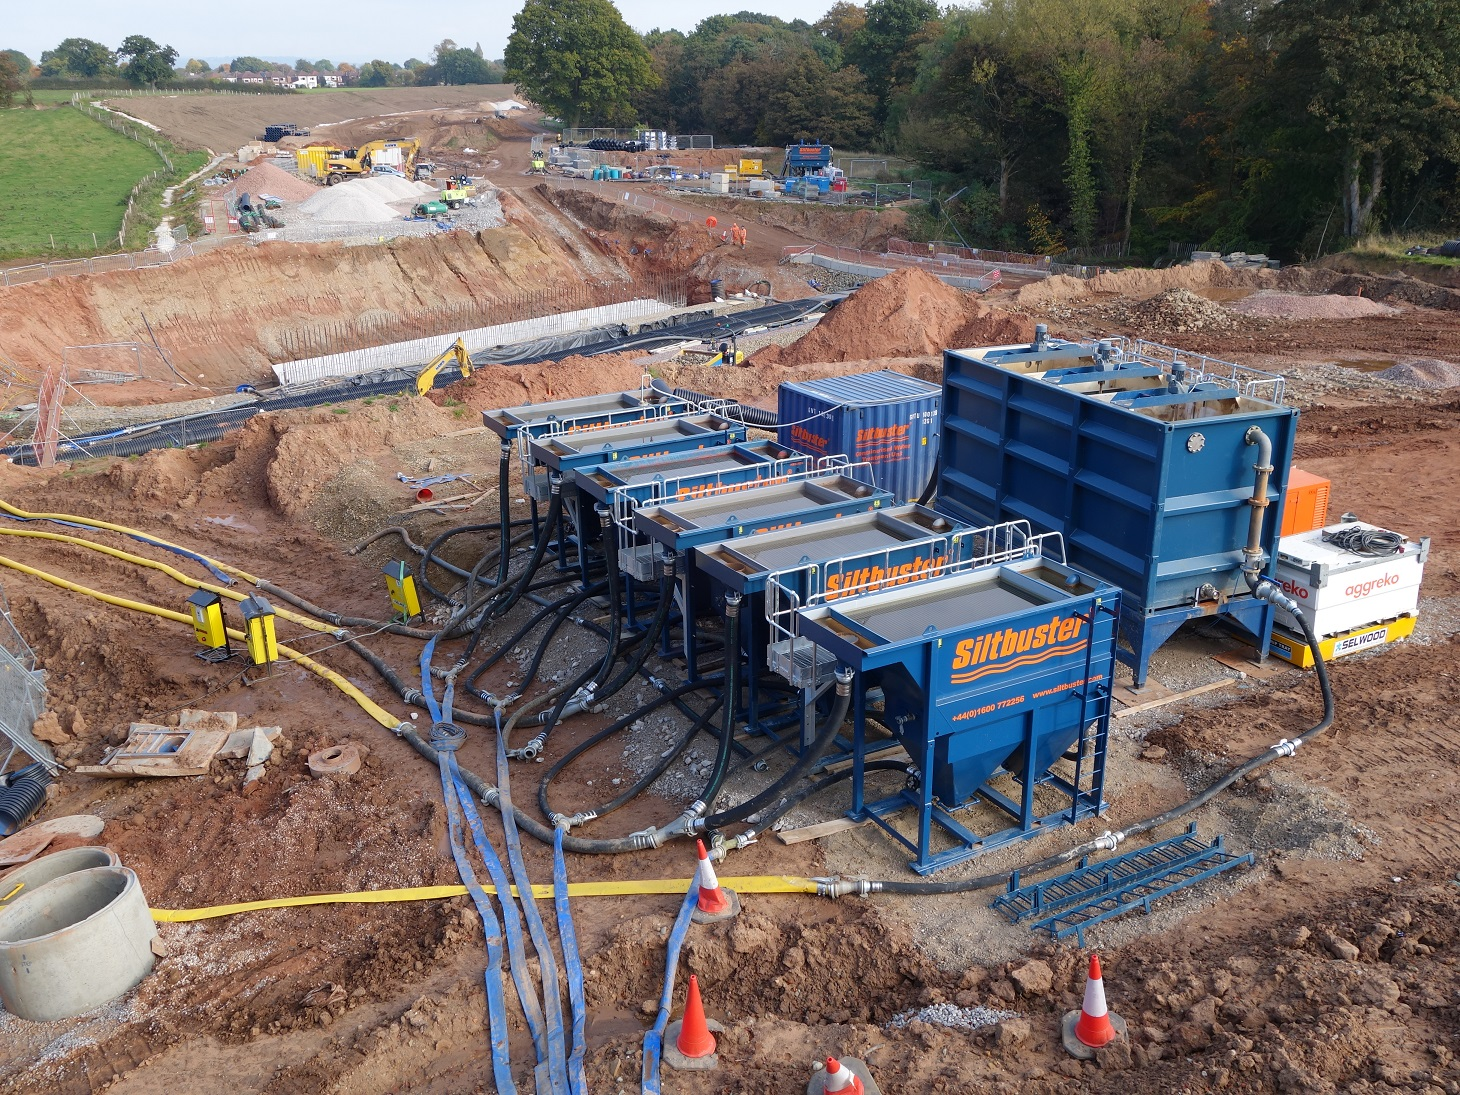 Siltbuster system for treating construction water run-off